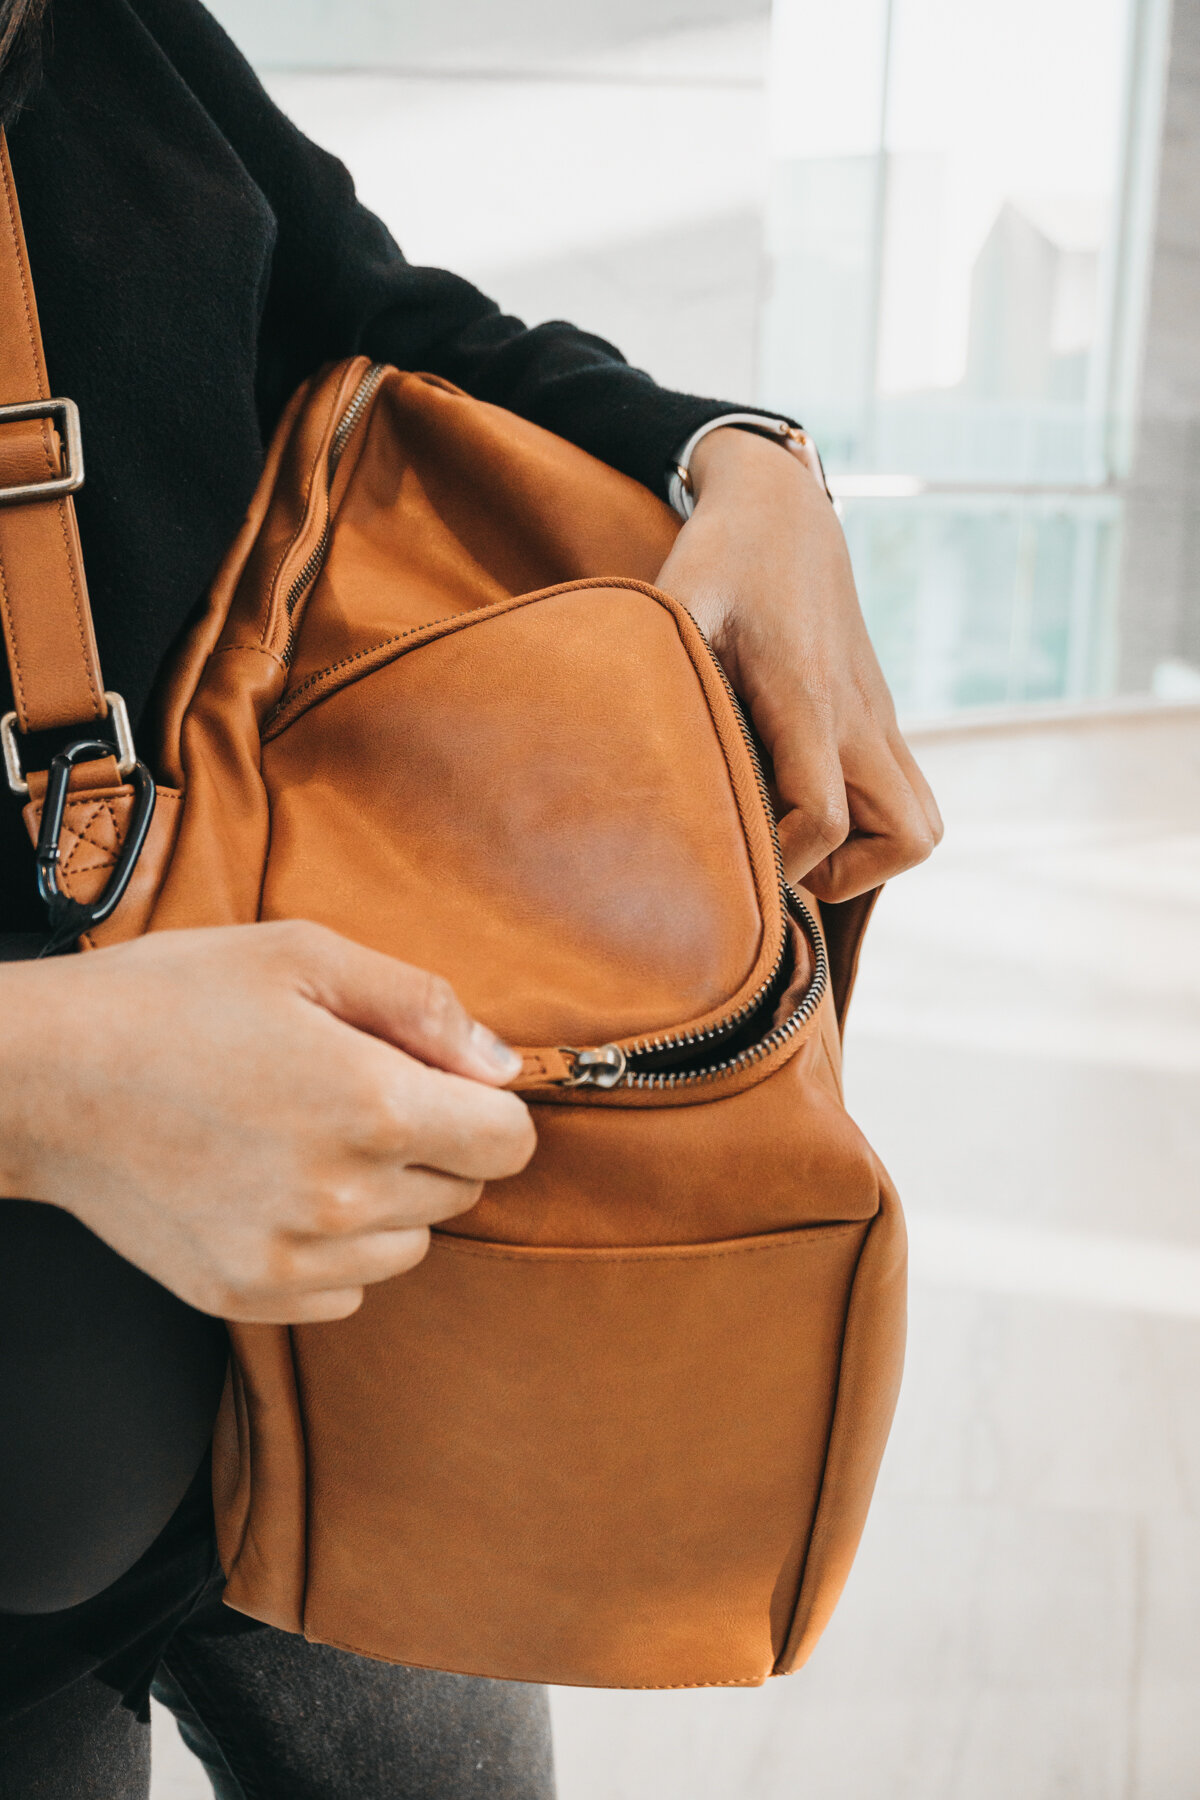 Atlas Supply Co The Minimalist Bag in Penny Review | Nicole Constante-5.jpg